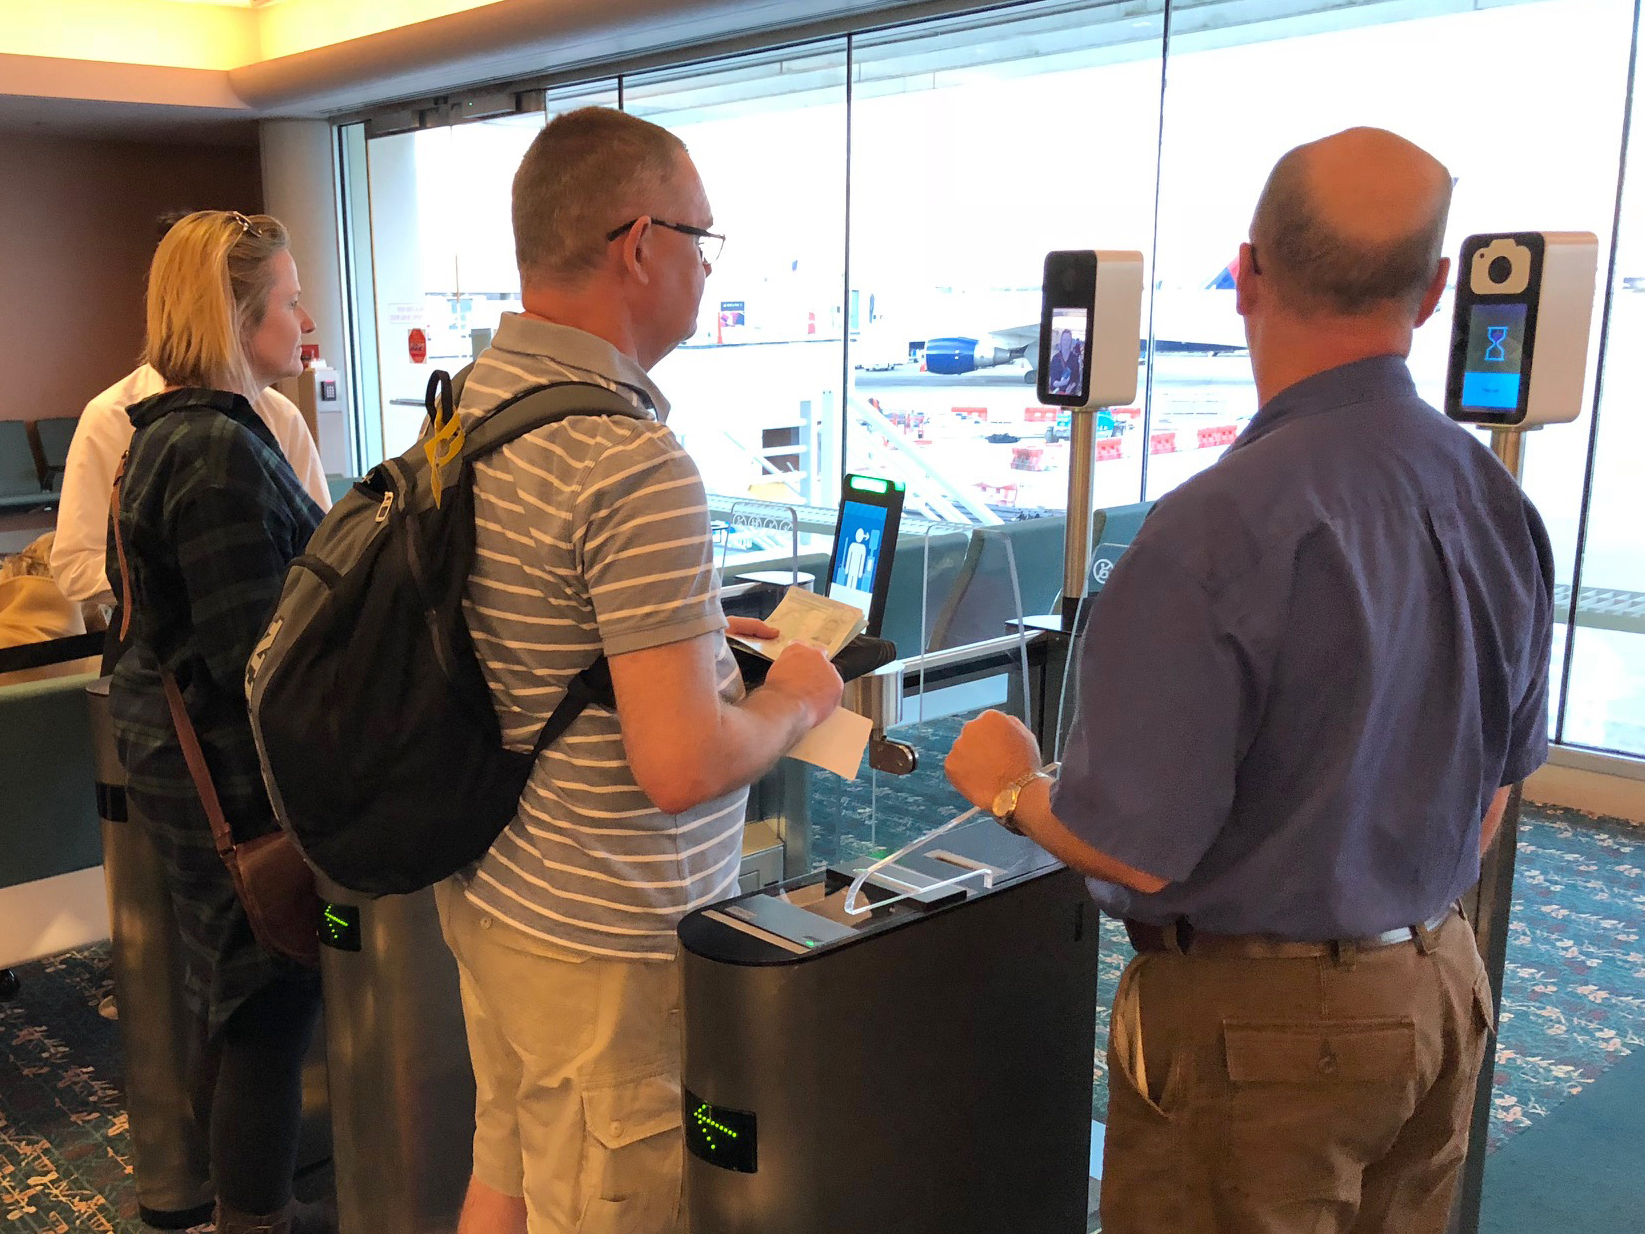 Passengers use facial recognition scanners before boarding a British Airways flight in Orlando, Fla.Customs and Border Protection is testing and hopes to expand the use of biometric scanners at airports across the U.S.Passengers use facial recognition scanners before boarding a British Airways flight in Orlando, Fla.Customs and Border Protection is testing and hopes to expand the use of biometric scanners at airports across the U.S.